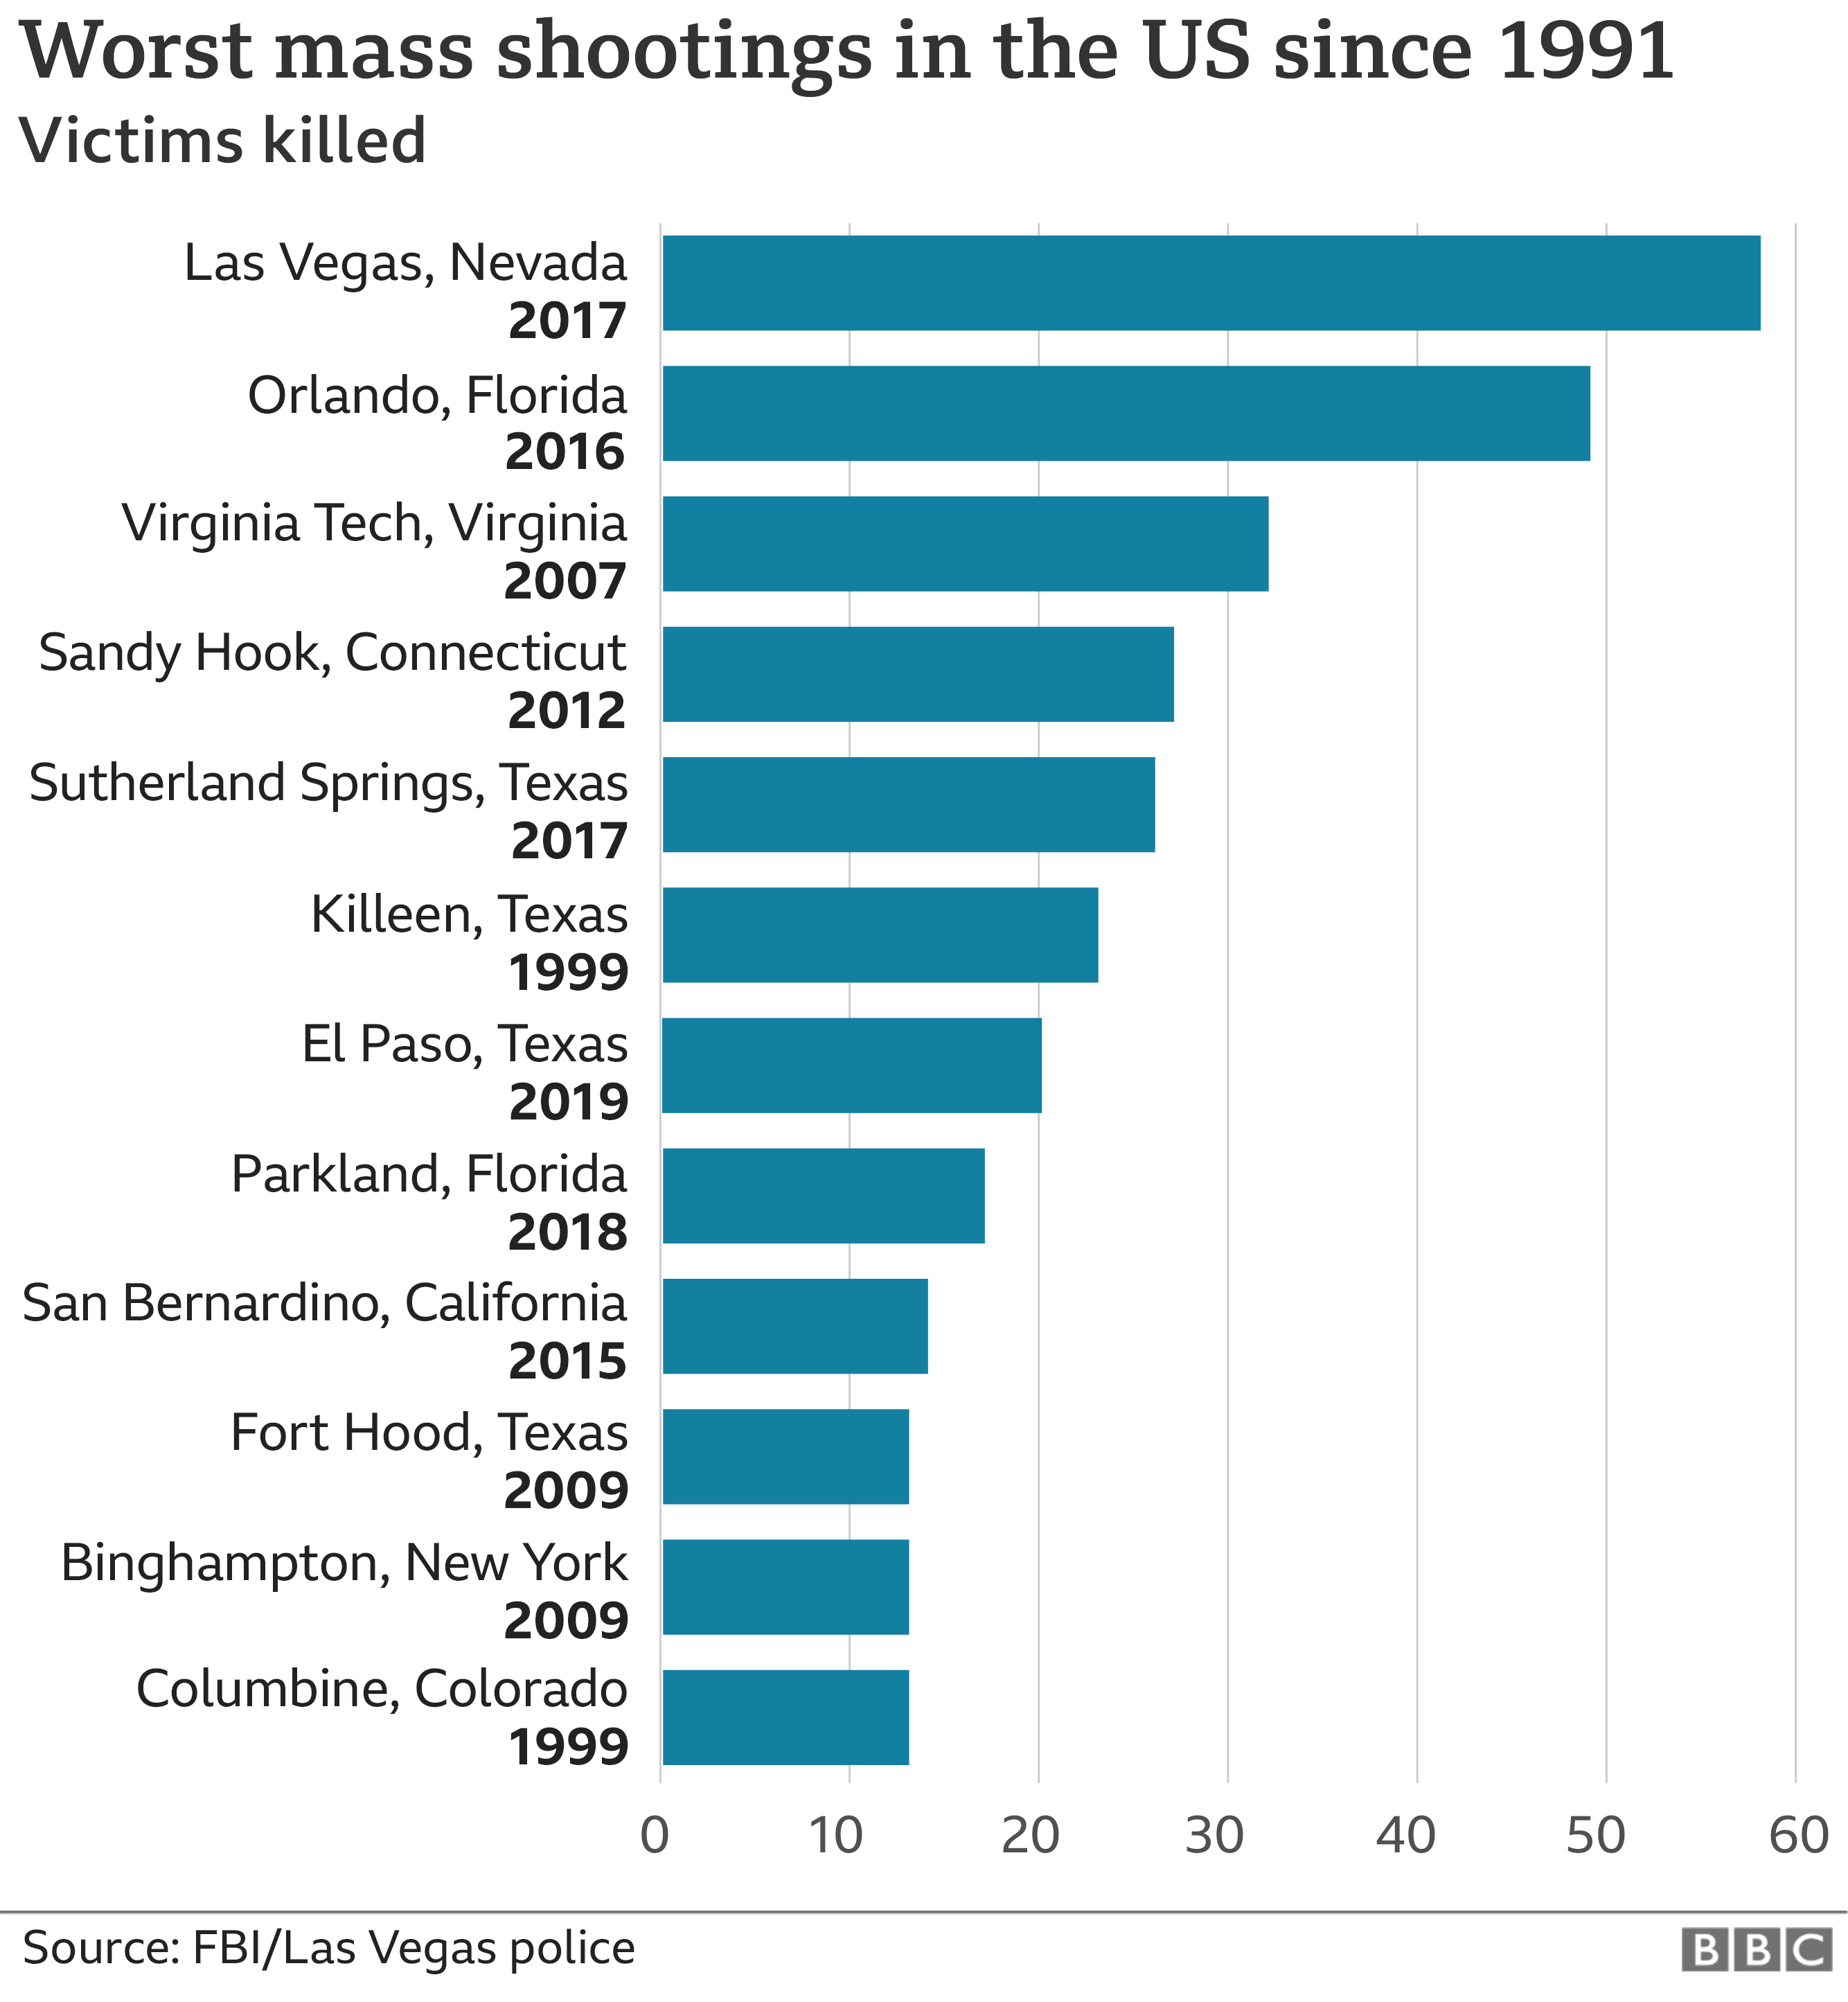 Chart showing worst mass shootings in the US since 1991 with Las Vegas at the top. Updated 8 April 2021